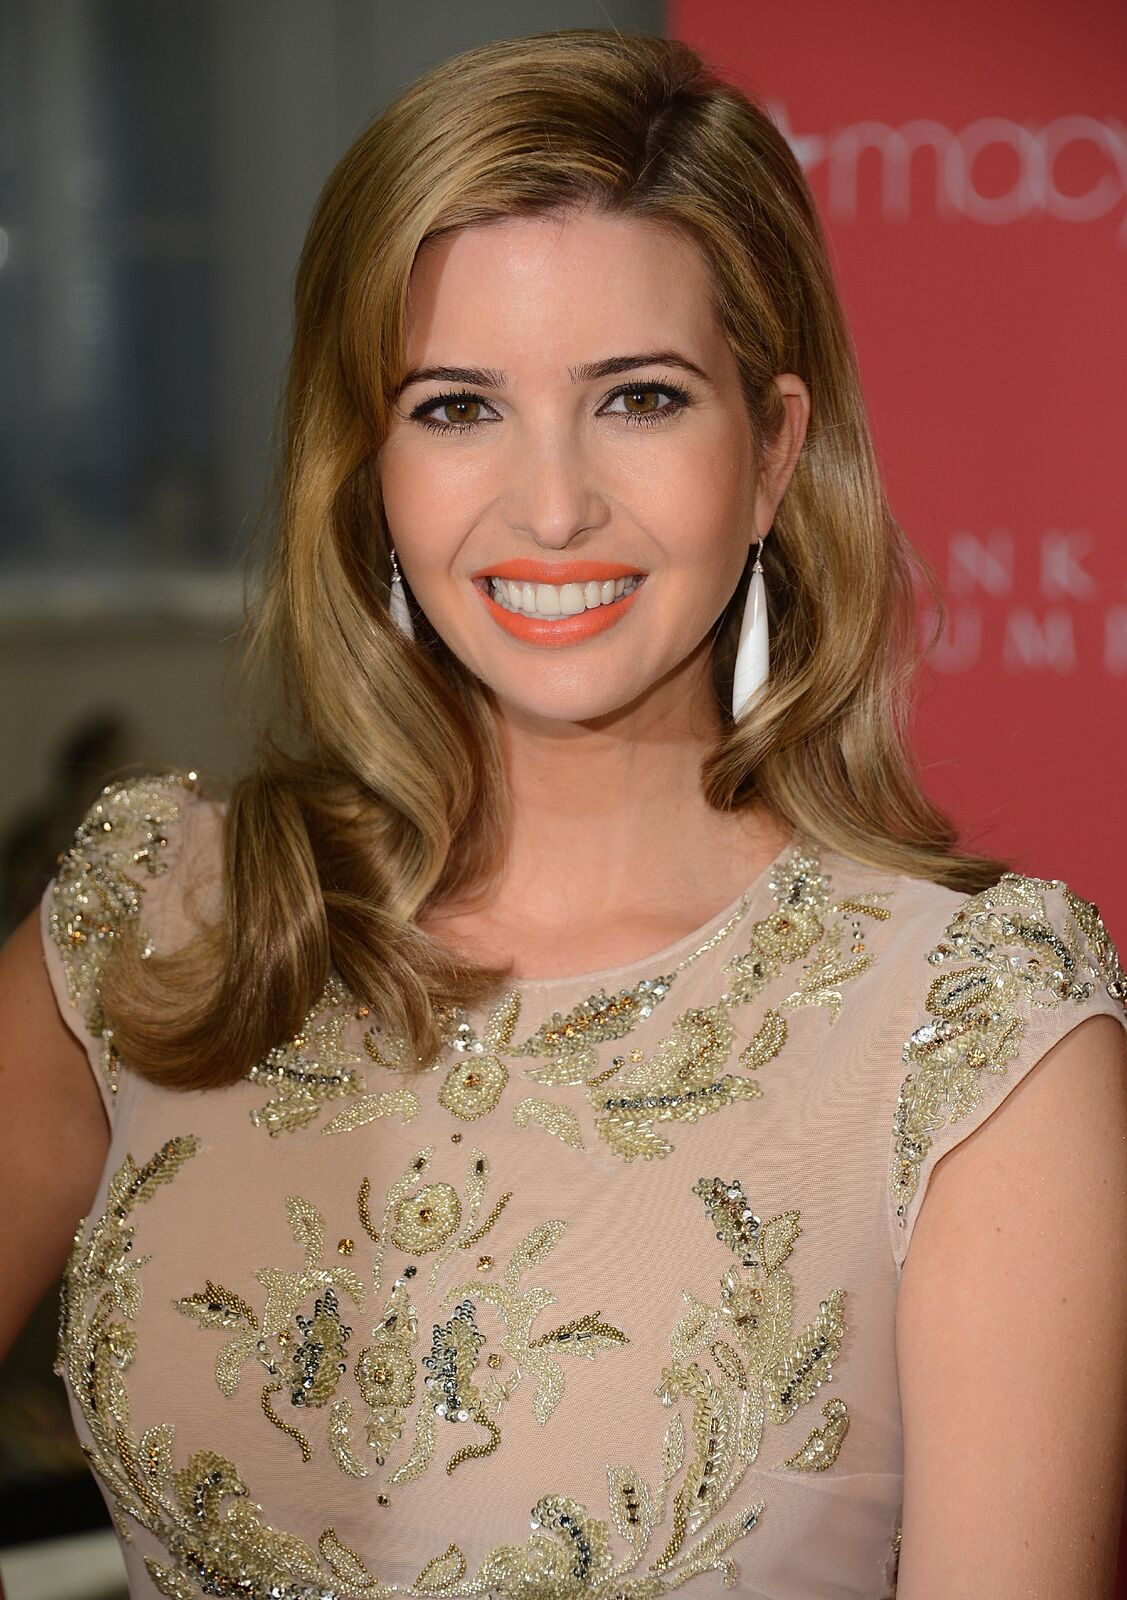 Ivanka Trump attends Ivanka Trump Fragrance Launch at Macy's Herald Square on February 19, 2013. | Source: Getty Images